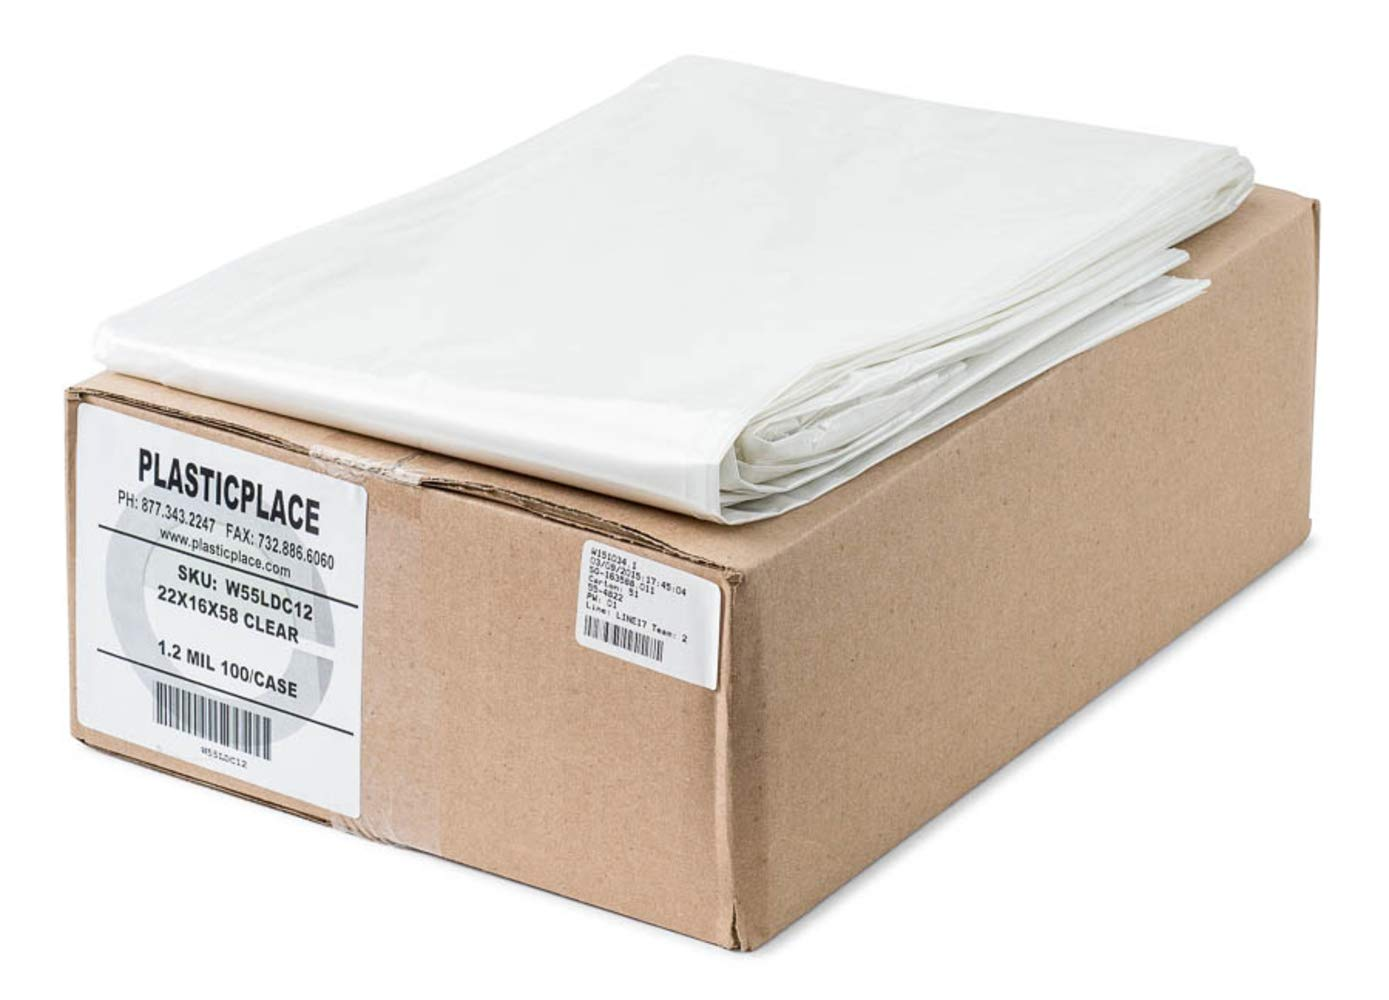 Plasticplace 55-60 Gallon Trash Bags │ 1.2 Mil │ Clear Heavy Duty Garbage Can Liners │ 38'' x 58'' (100Count)